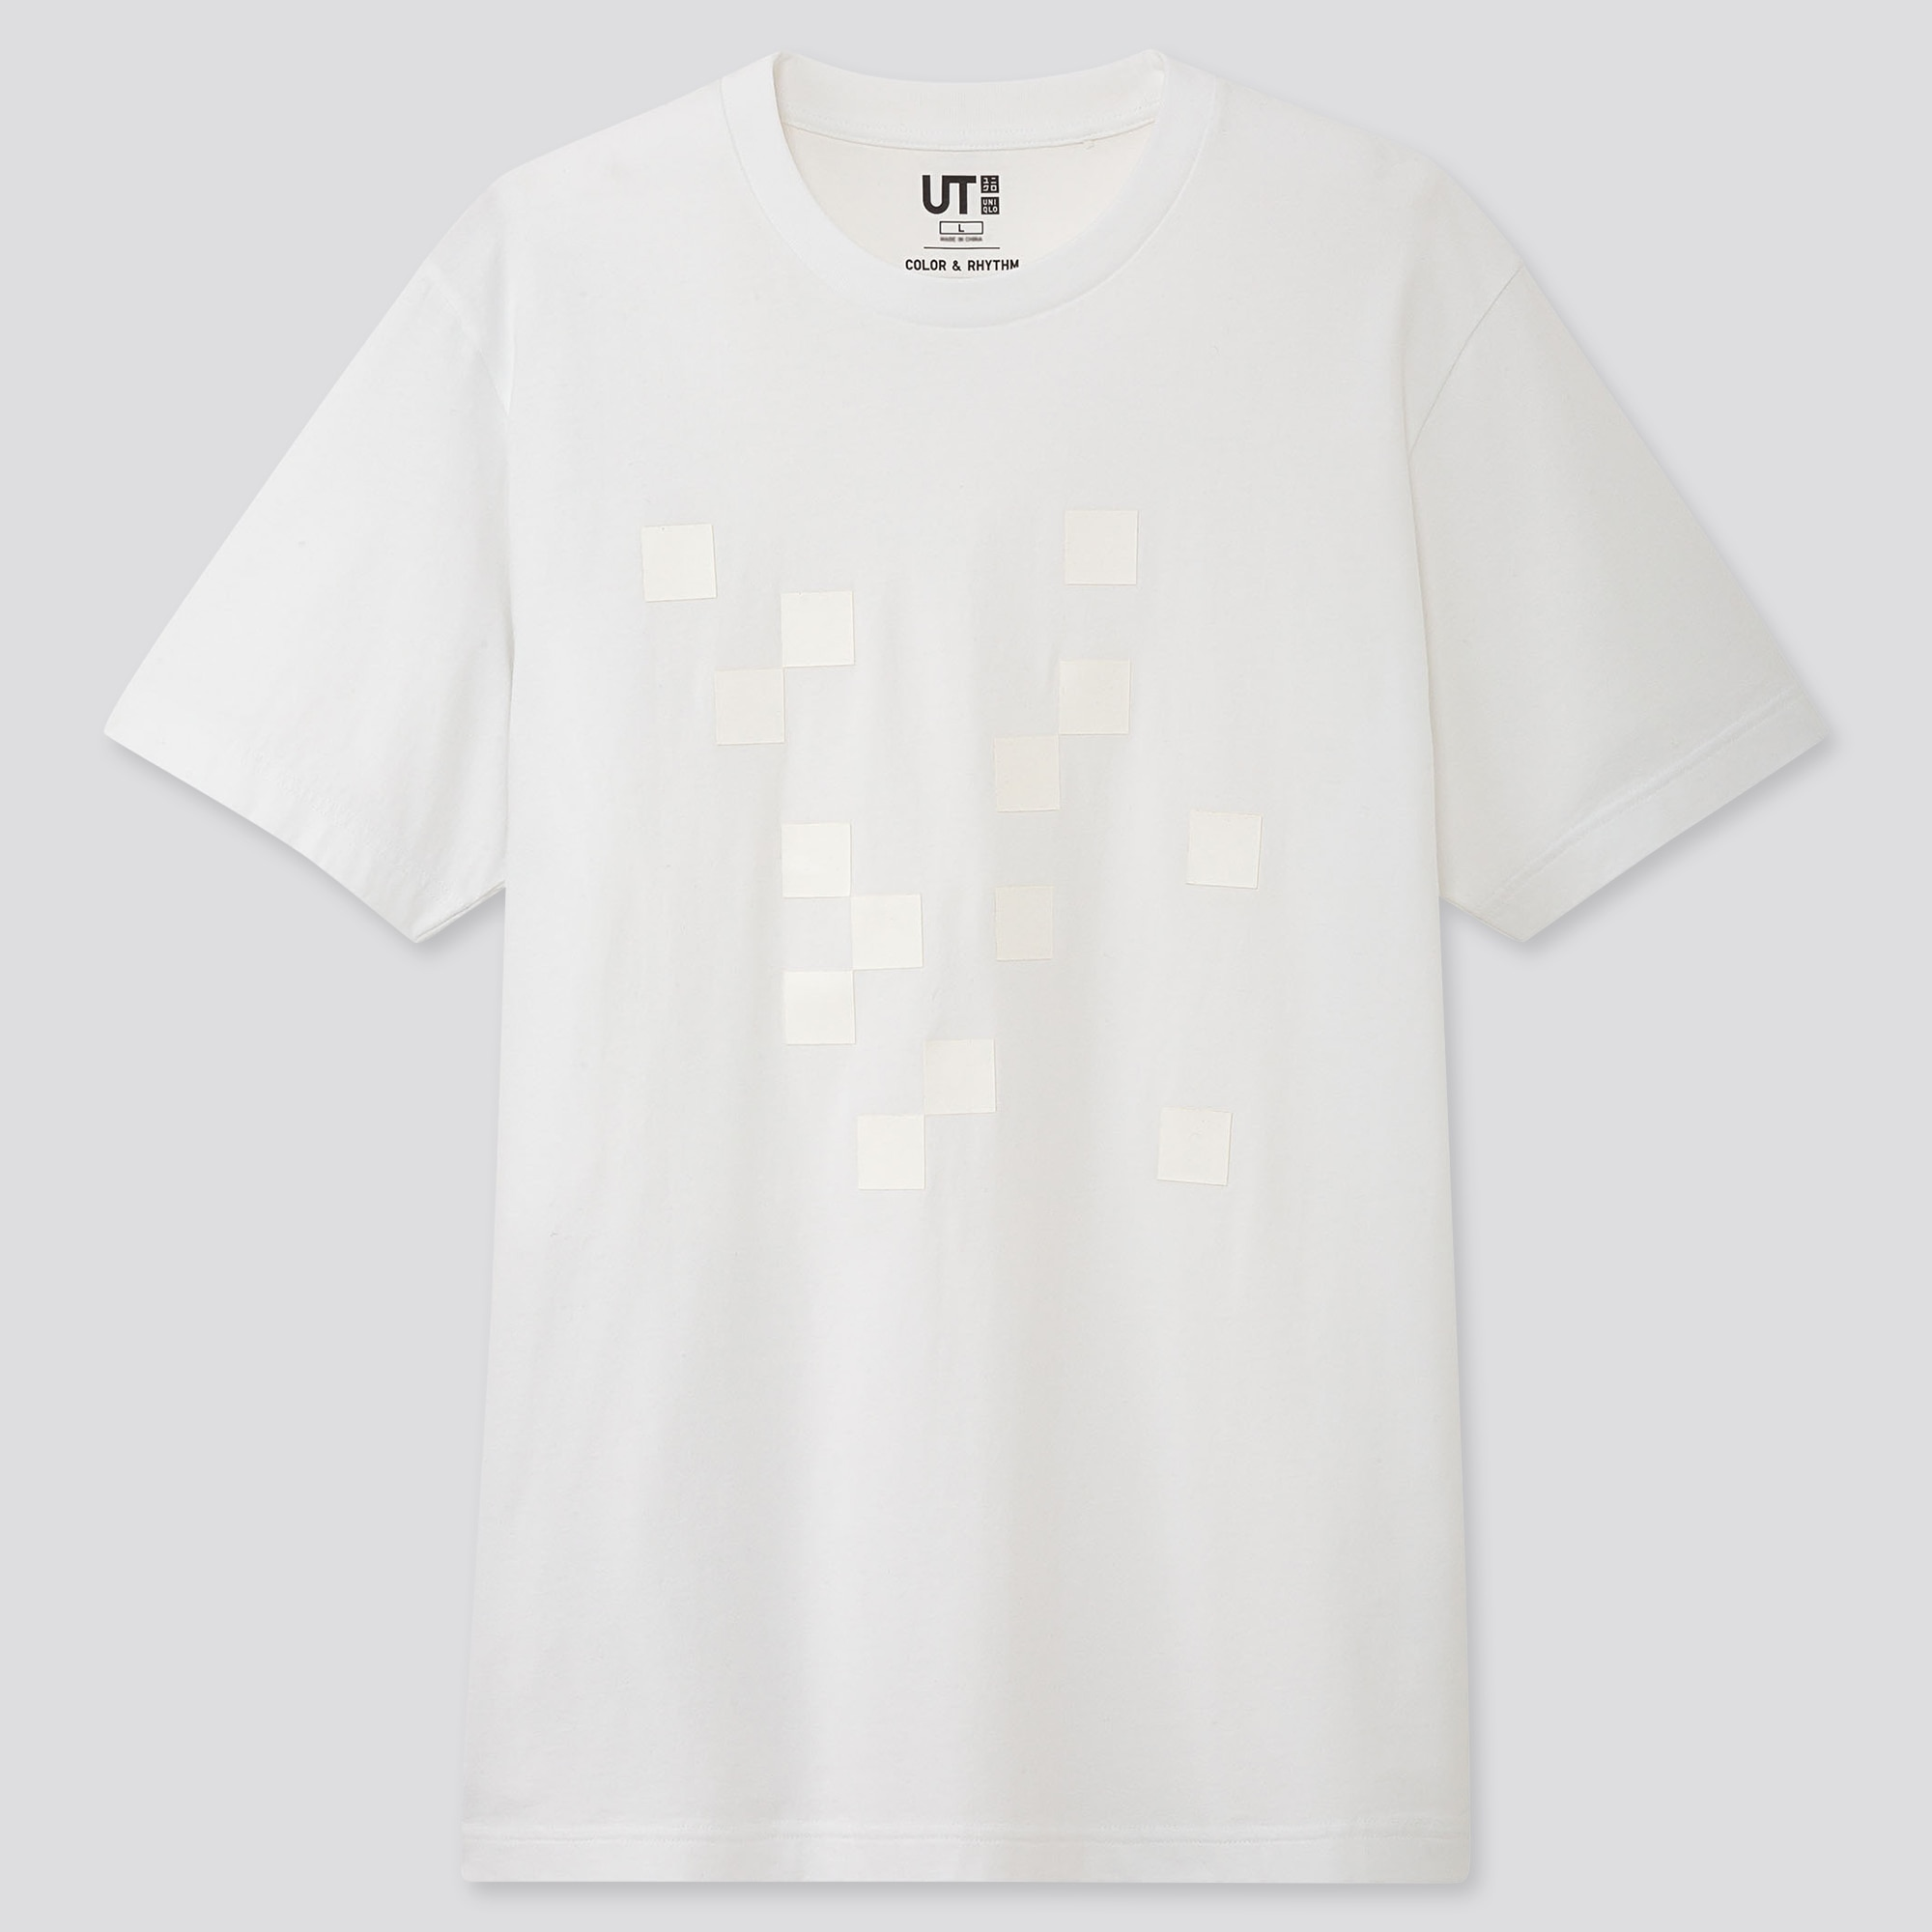 COLOR AND RHYTHM UT LYGIA PAPE (SHORT-SLEEVE GRAPHIC T-SHIRT)